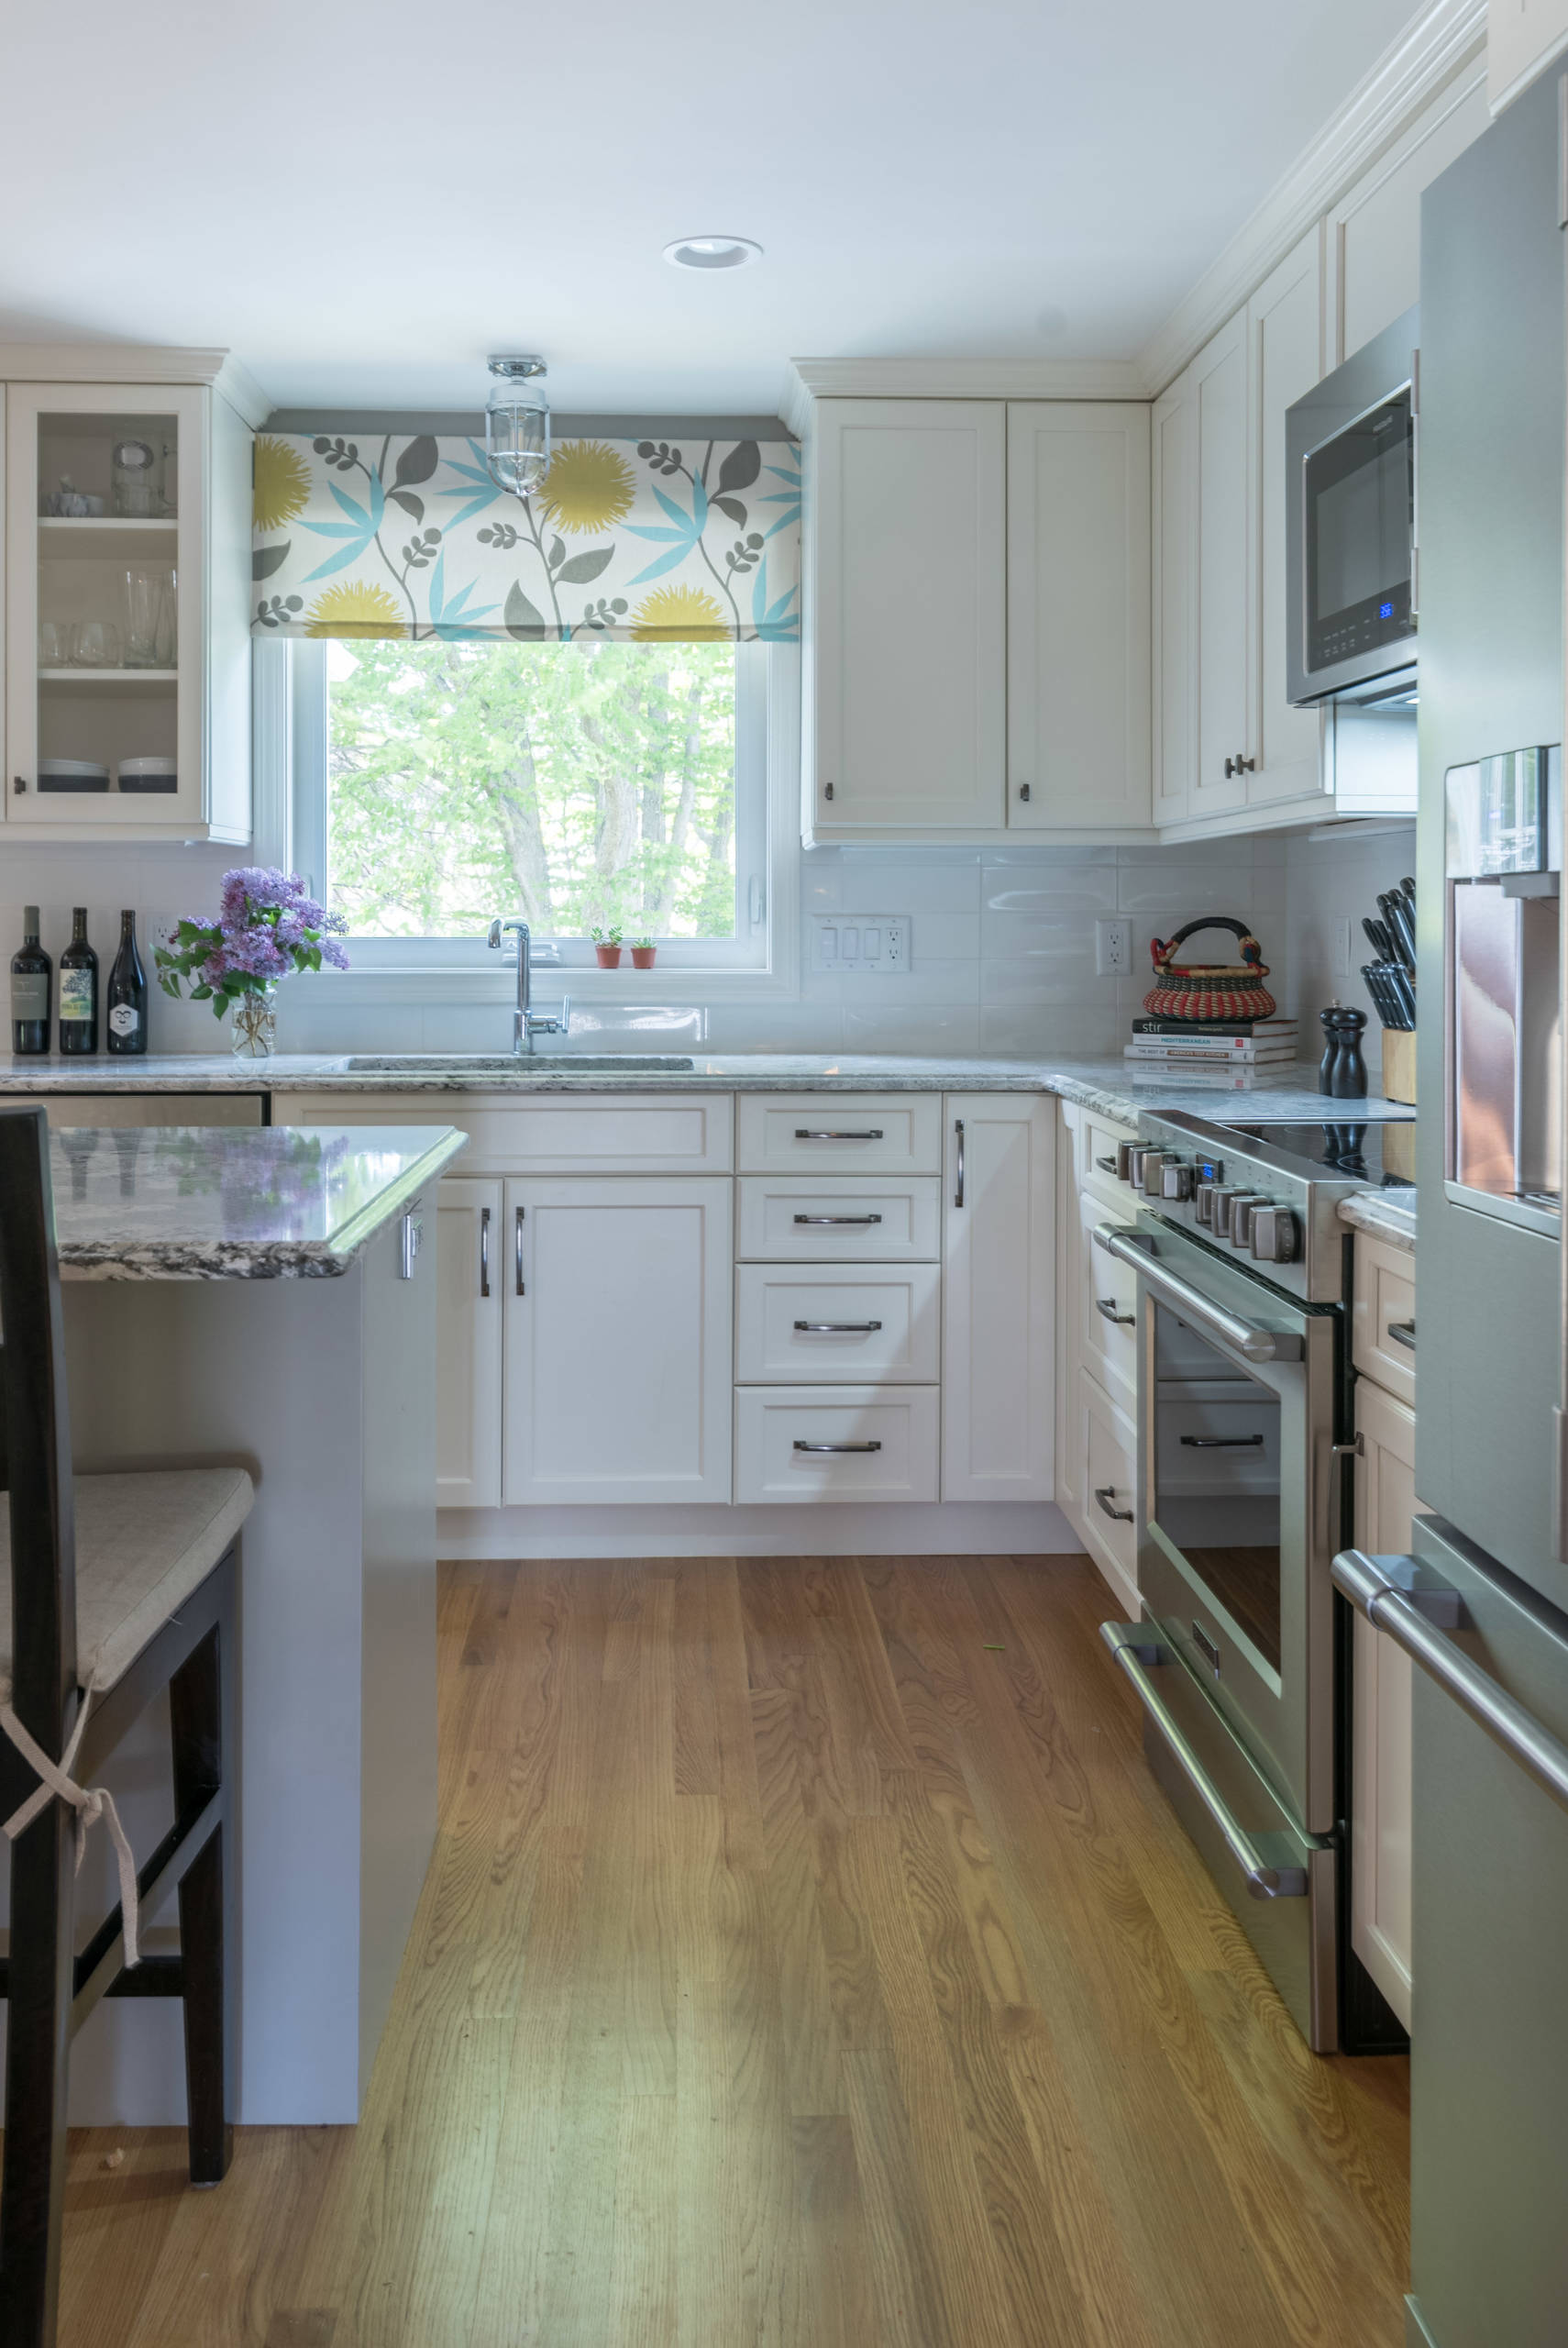 Classic white cabinets